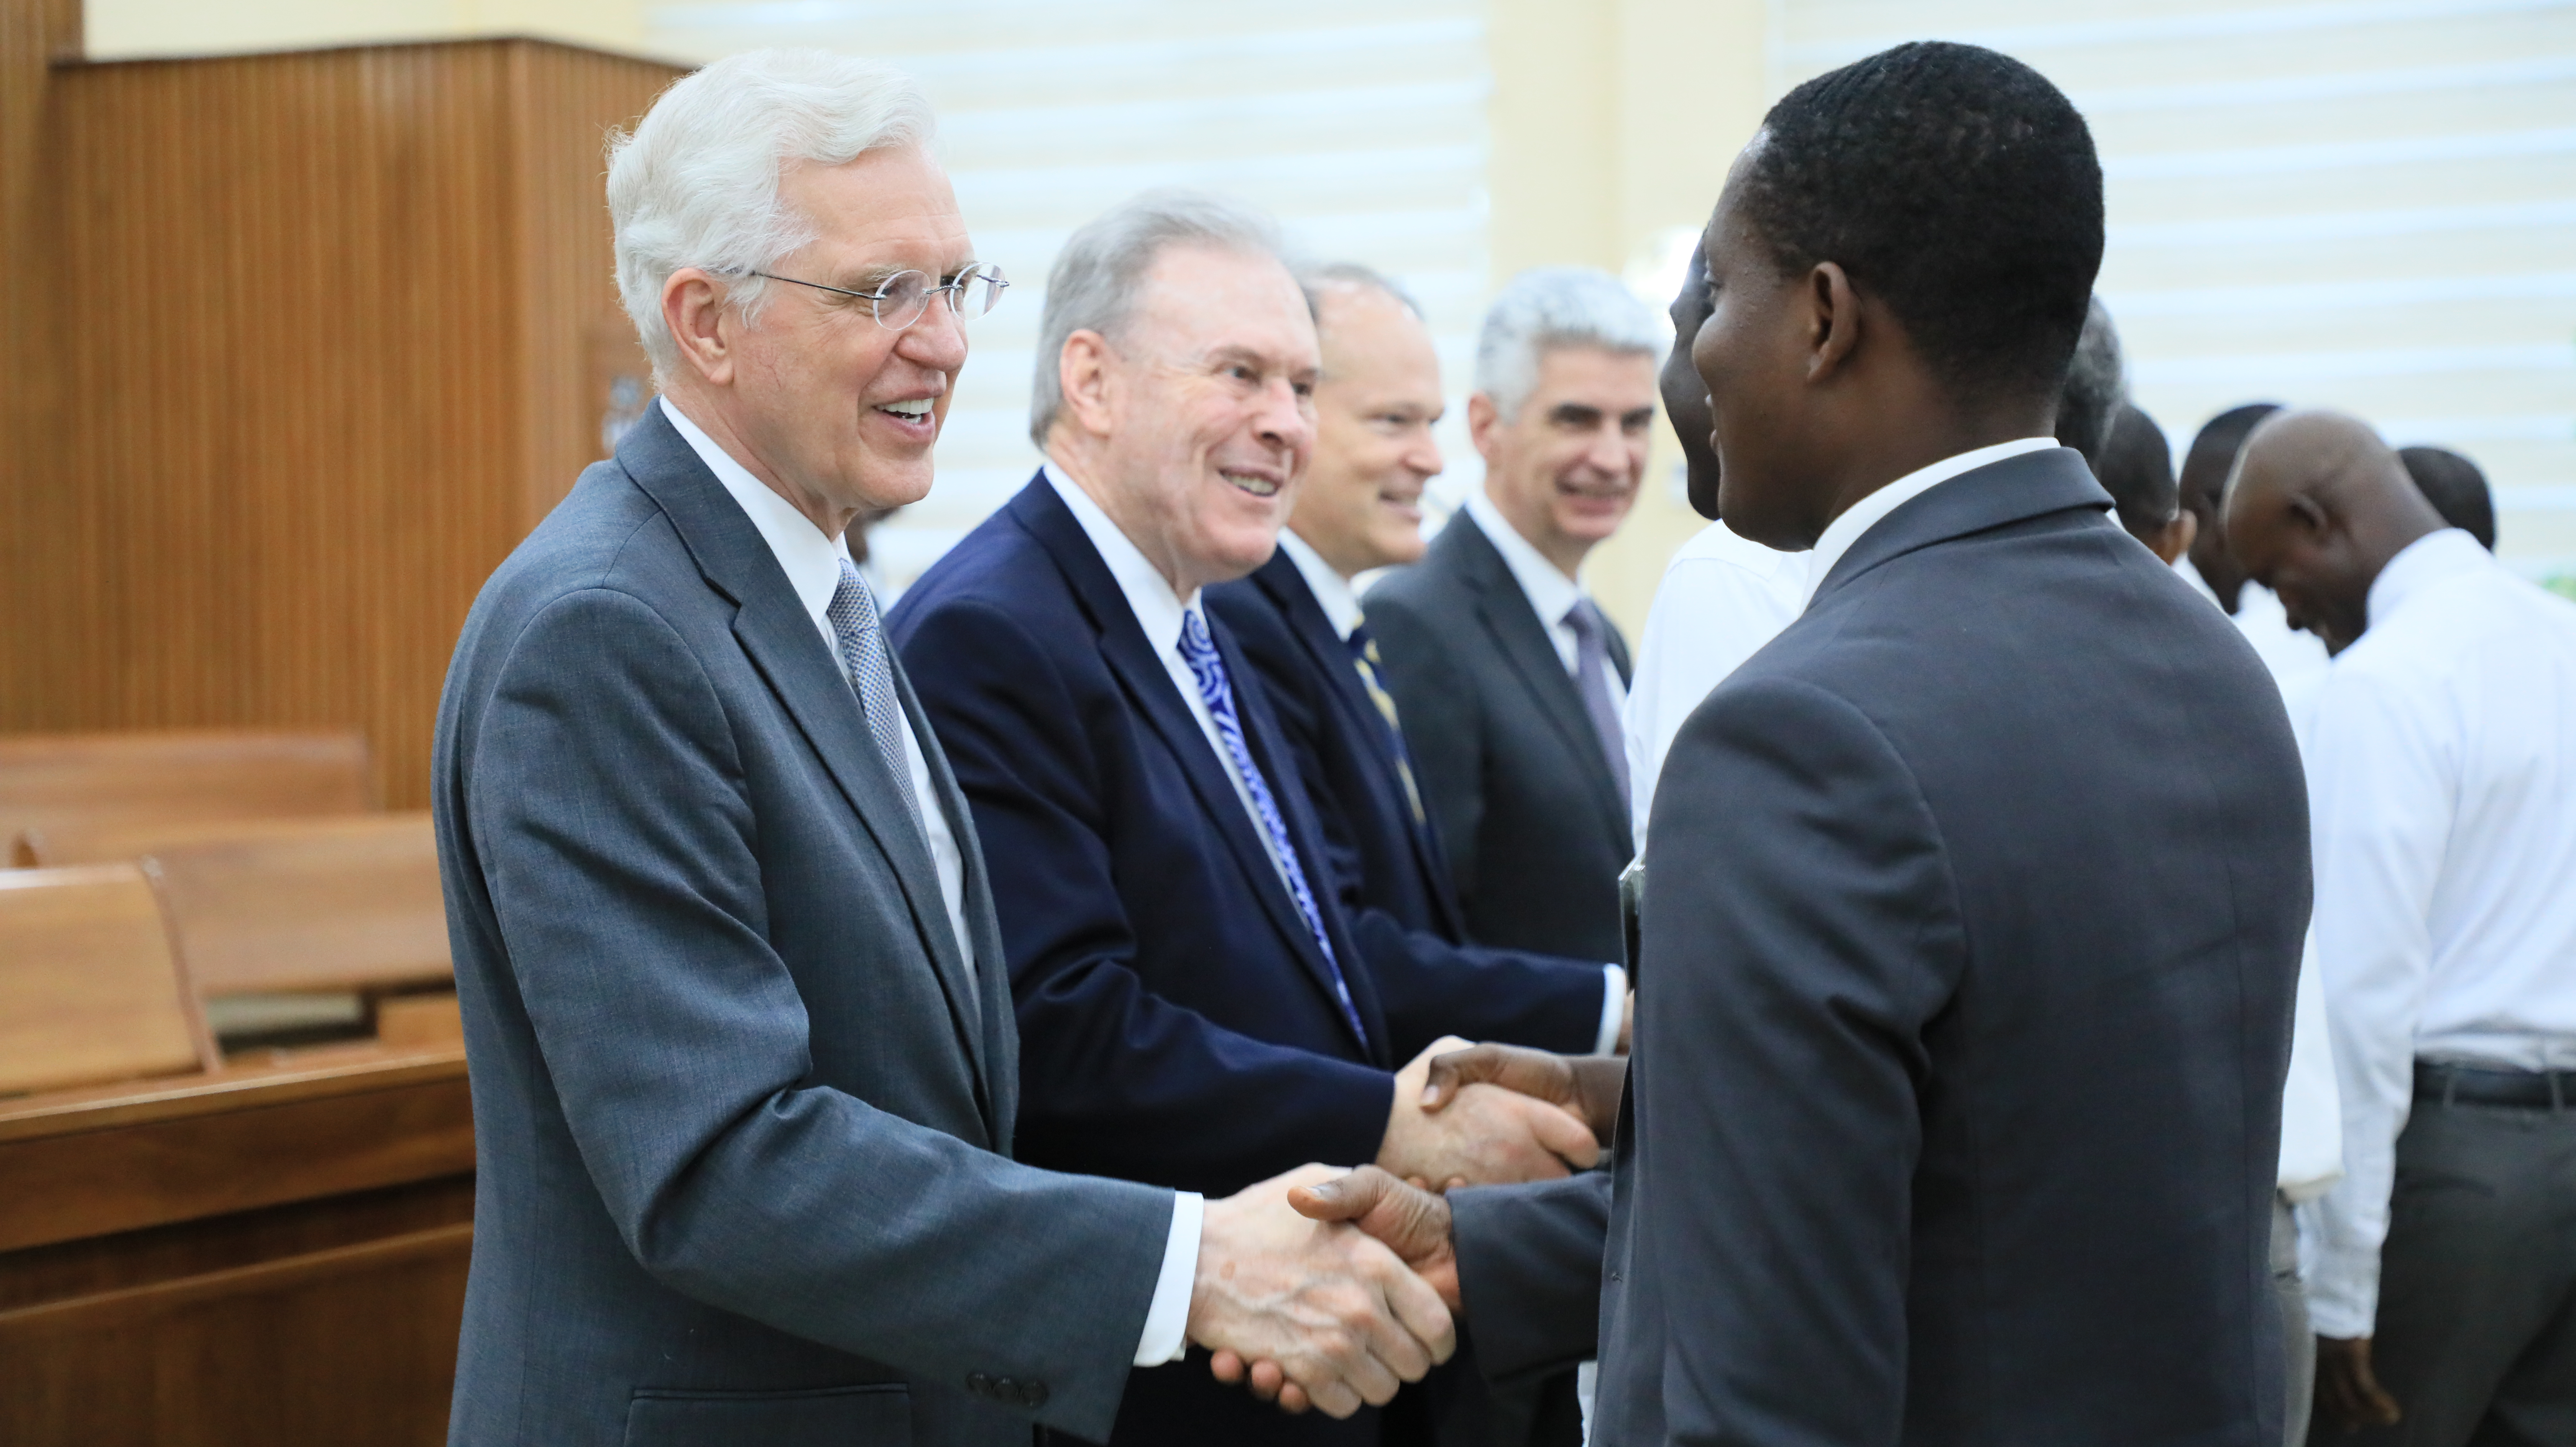 From left, Elder D. Todd Christofferson, Elder Terrence M. Vinson, Elder Marcus B. Nash and Bishop Gérald Caussé shake hands with members following a May 26, 2019, leadership conference in Accra, Ghana.